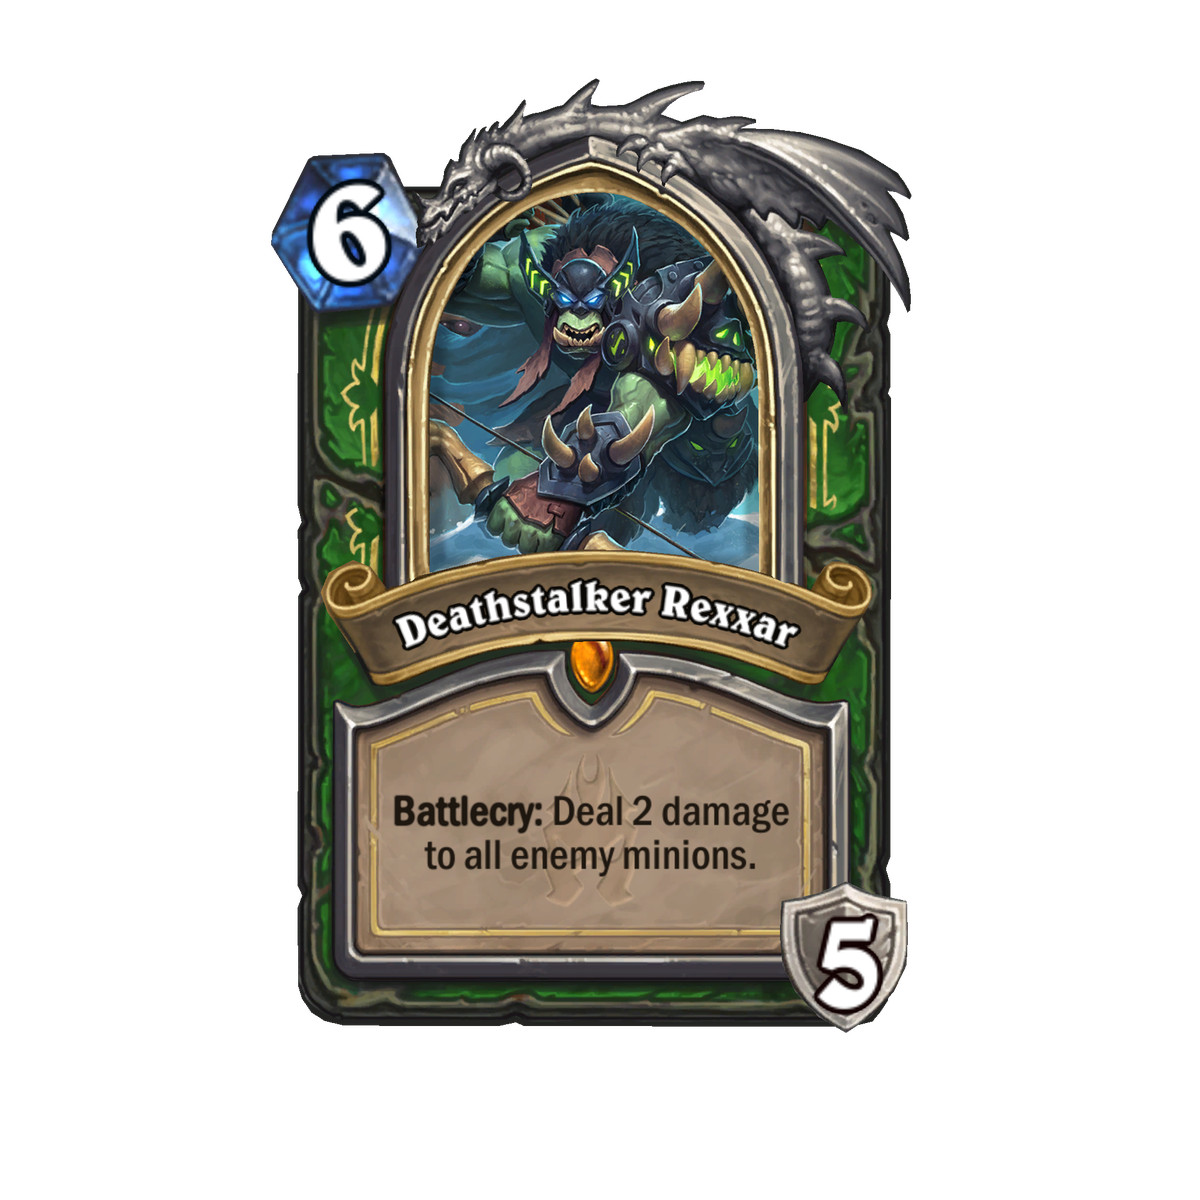 This Hearthstone card is titled Deathstalker Rexxar. It is a six-mana cost hero card that provides five armor and with a battlecry of dealing two damage to all enemy minions.